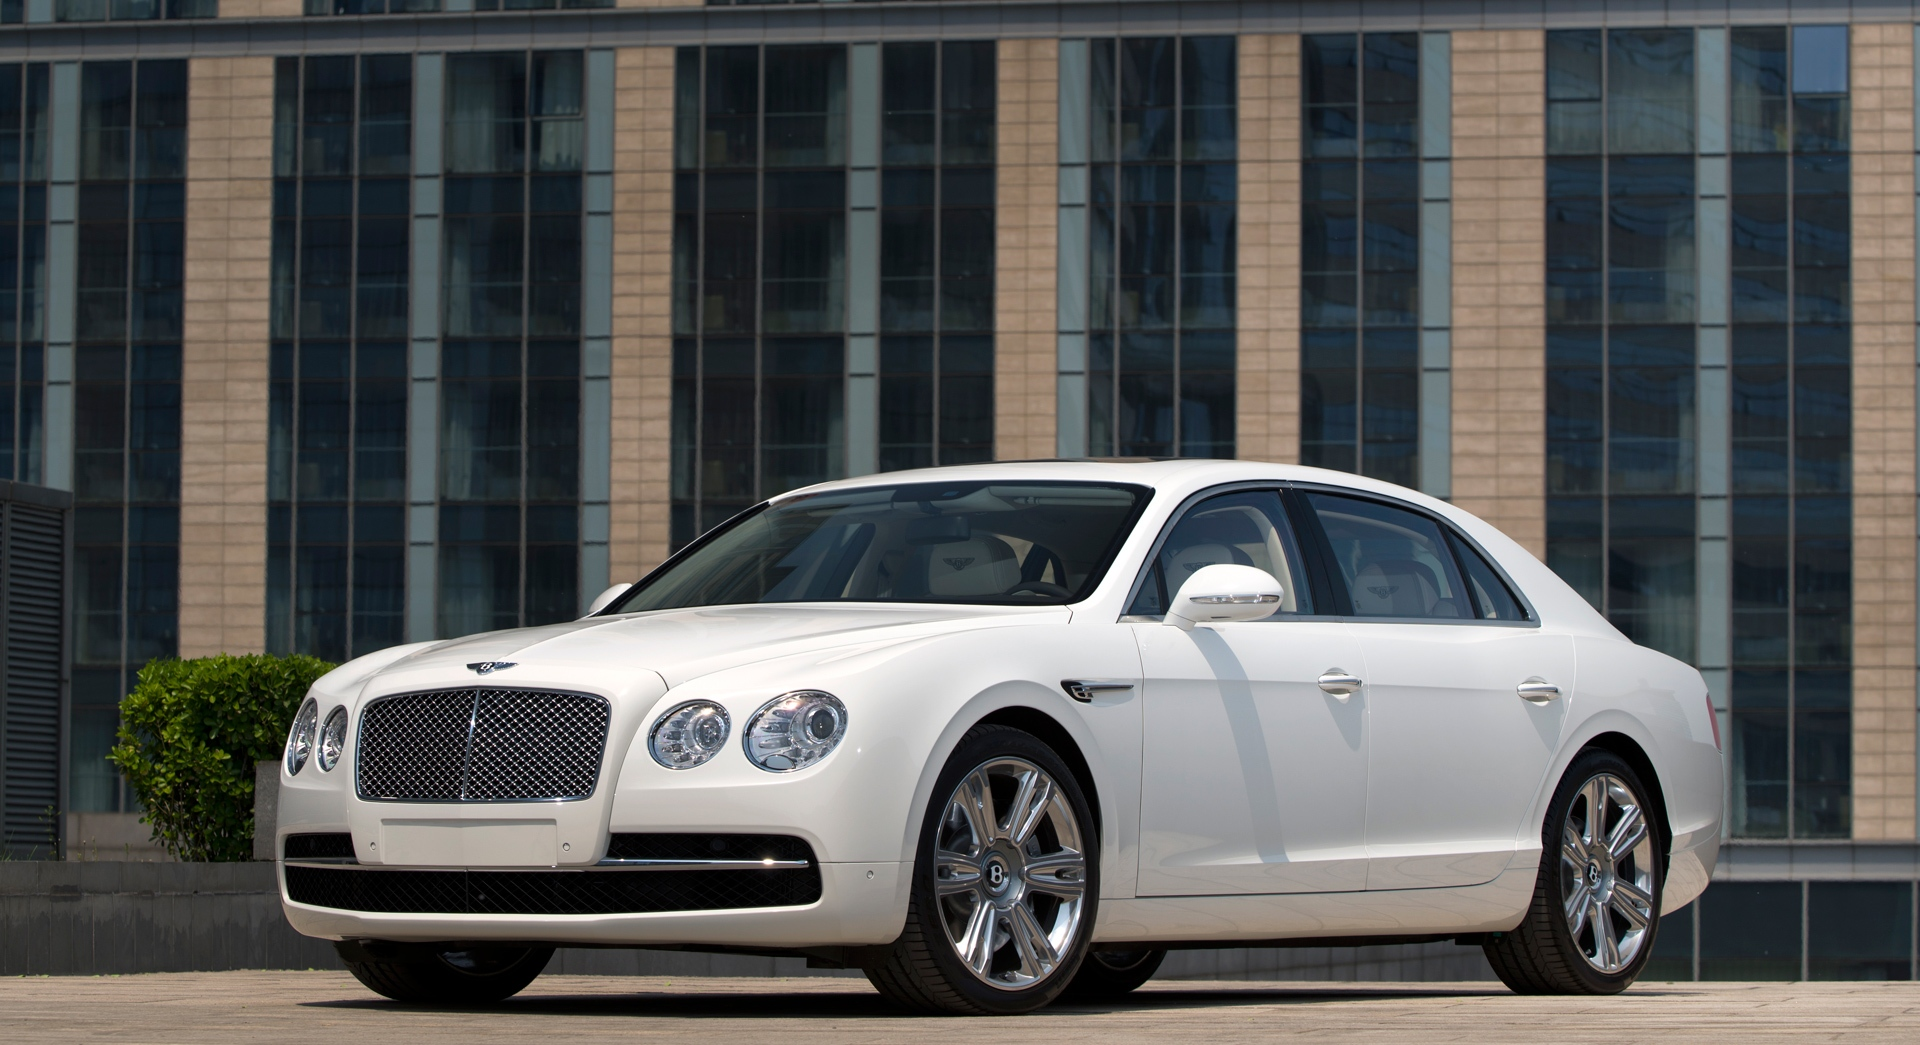 bentley flying spur white hd desktop wallpapers 4k hd. Black Bedroom Furniture Sets. Home Design Ideas